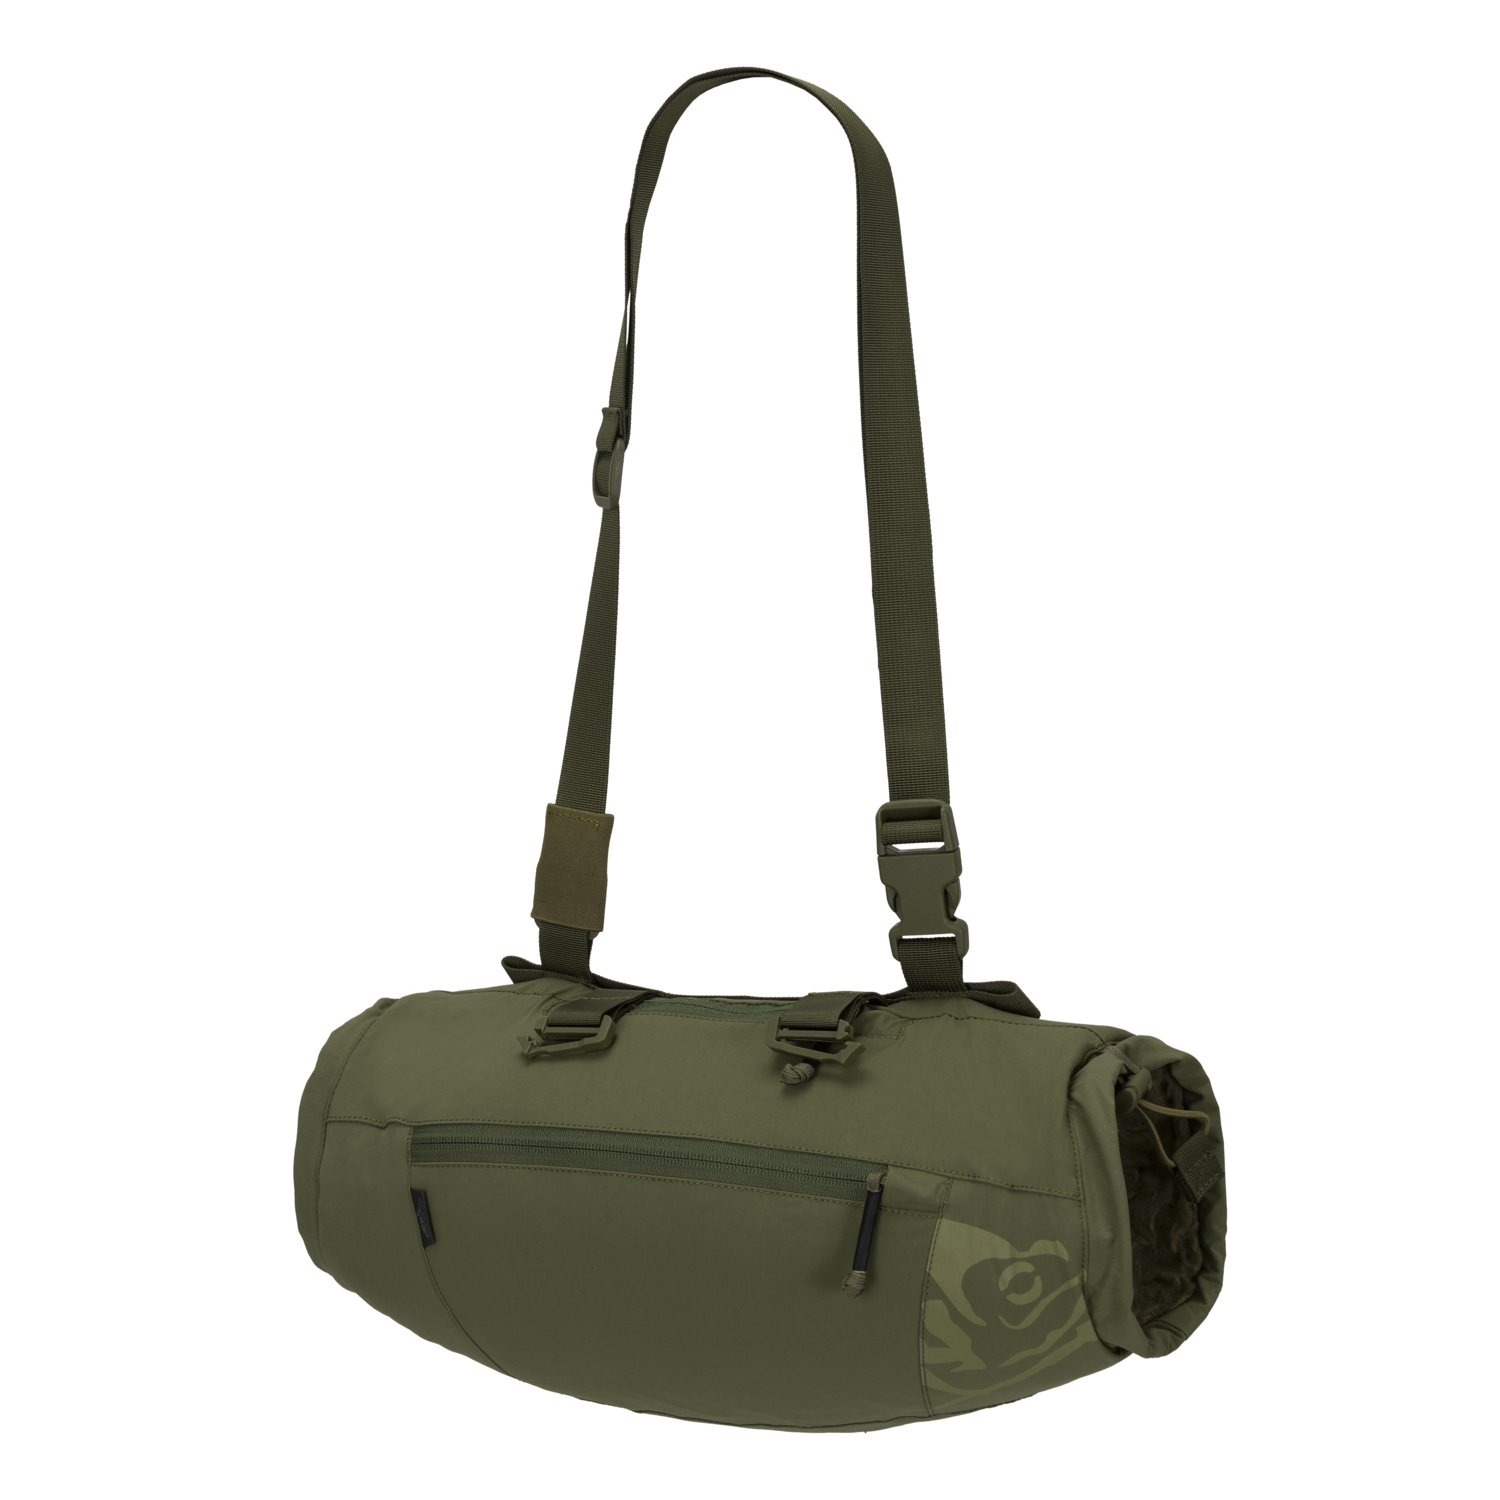 Image of Ocieplacz helikon frostbite hand warmer - nylon - olive green - one size (wm-fhw-nl-02)